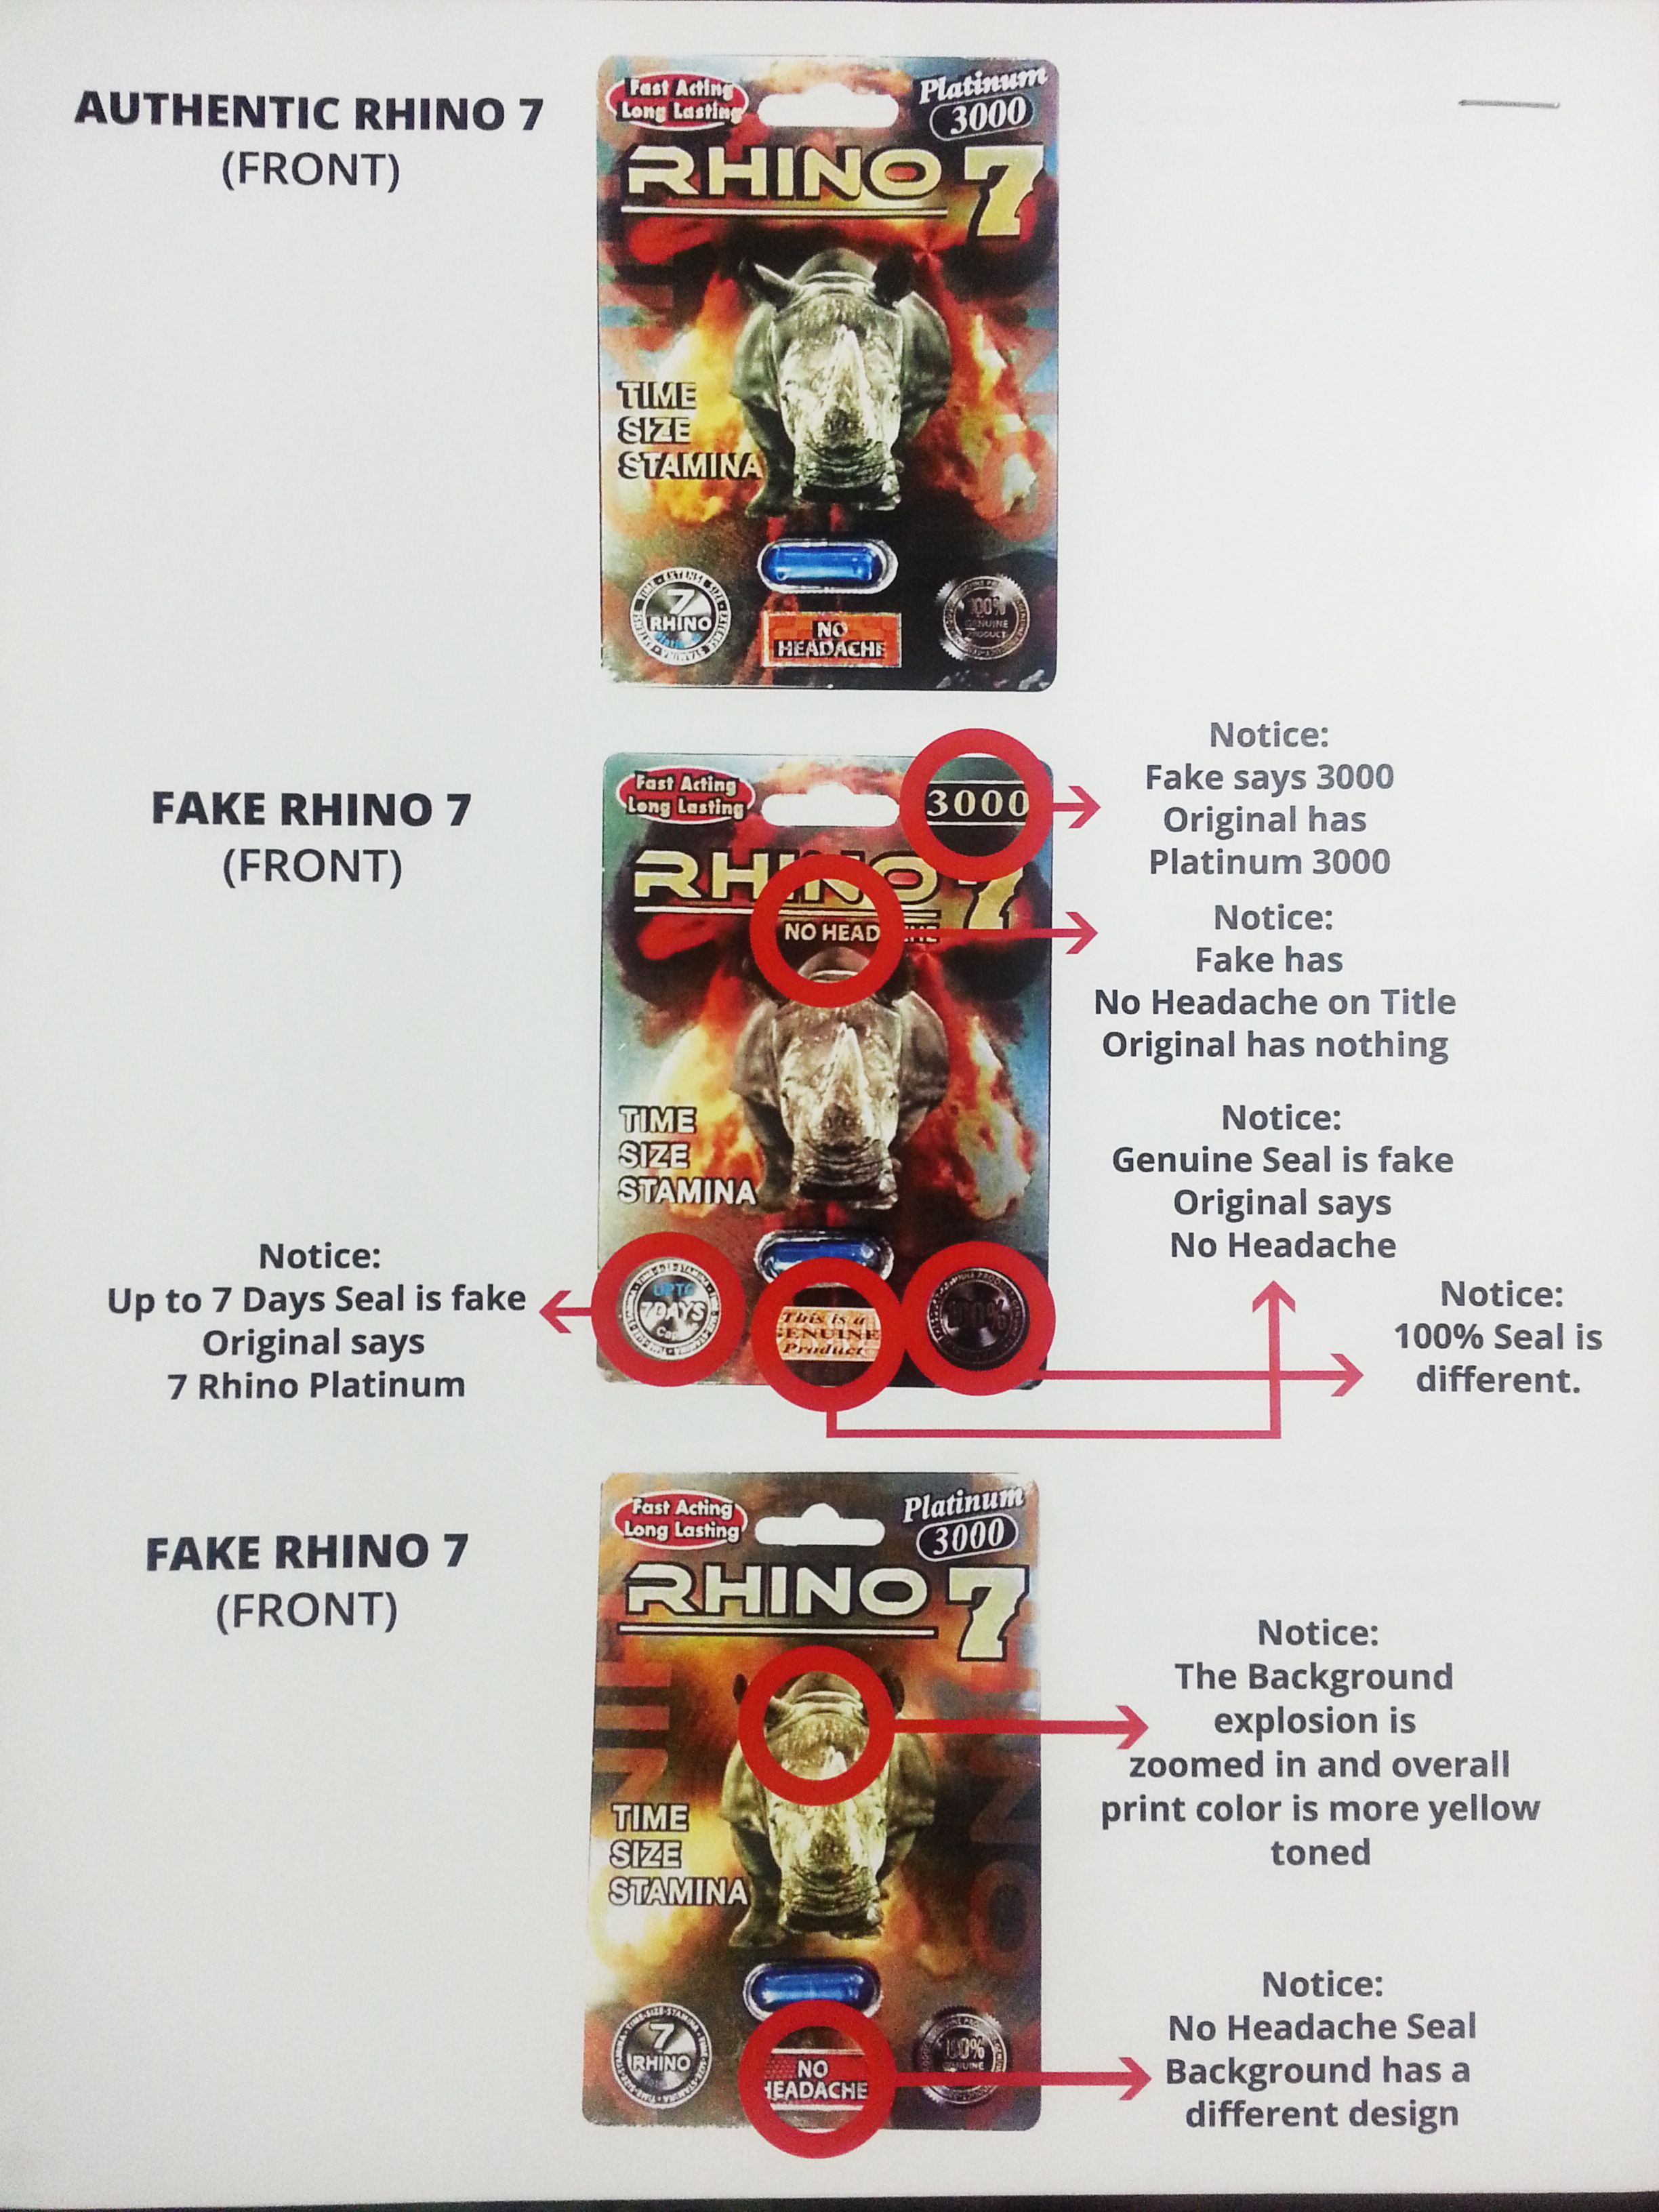 Counterfeit vs original Rhino 7 Platinum 3000  It's not hard to tell the real from the fakes.